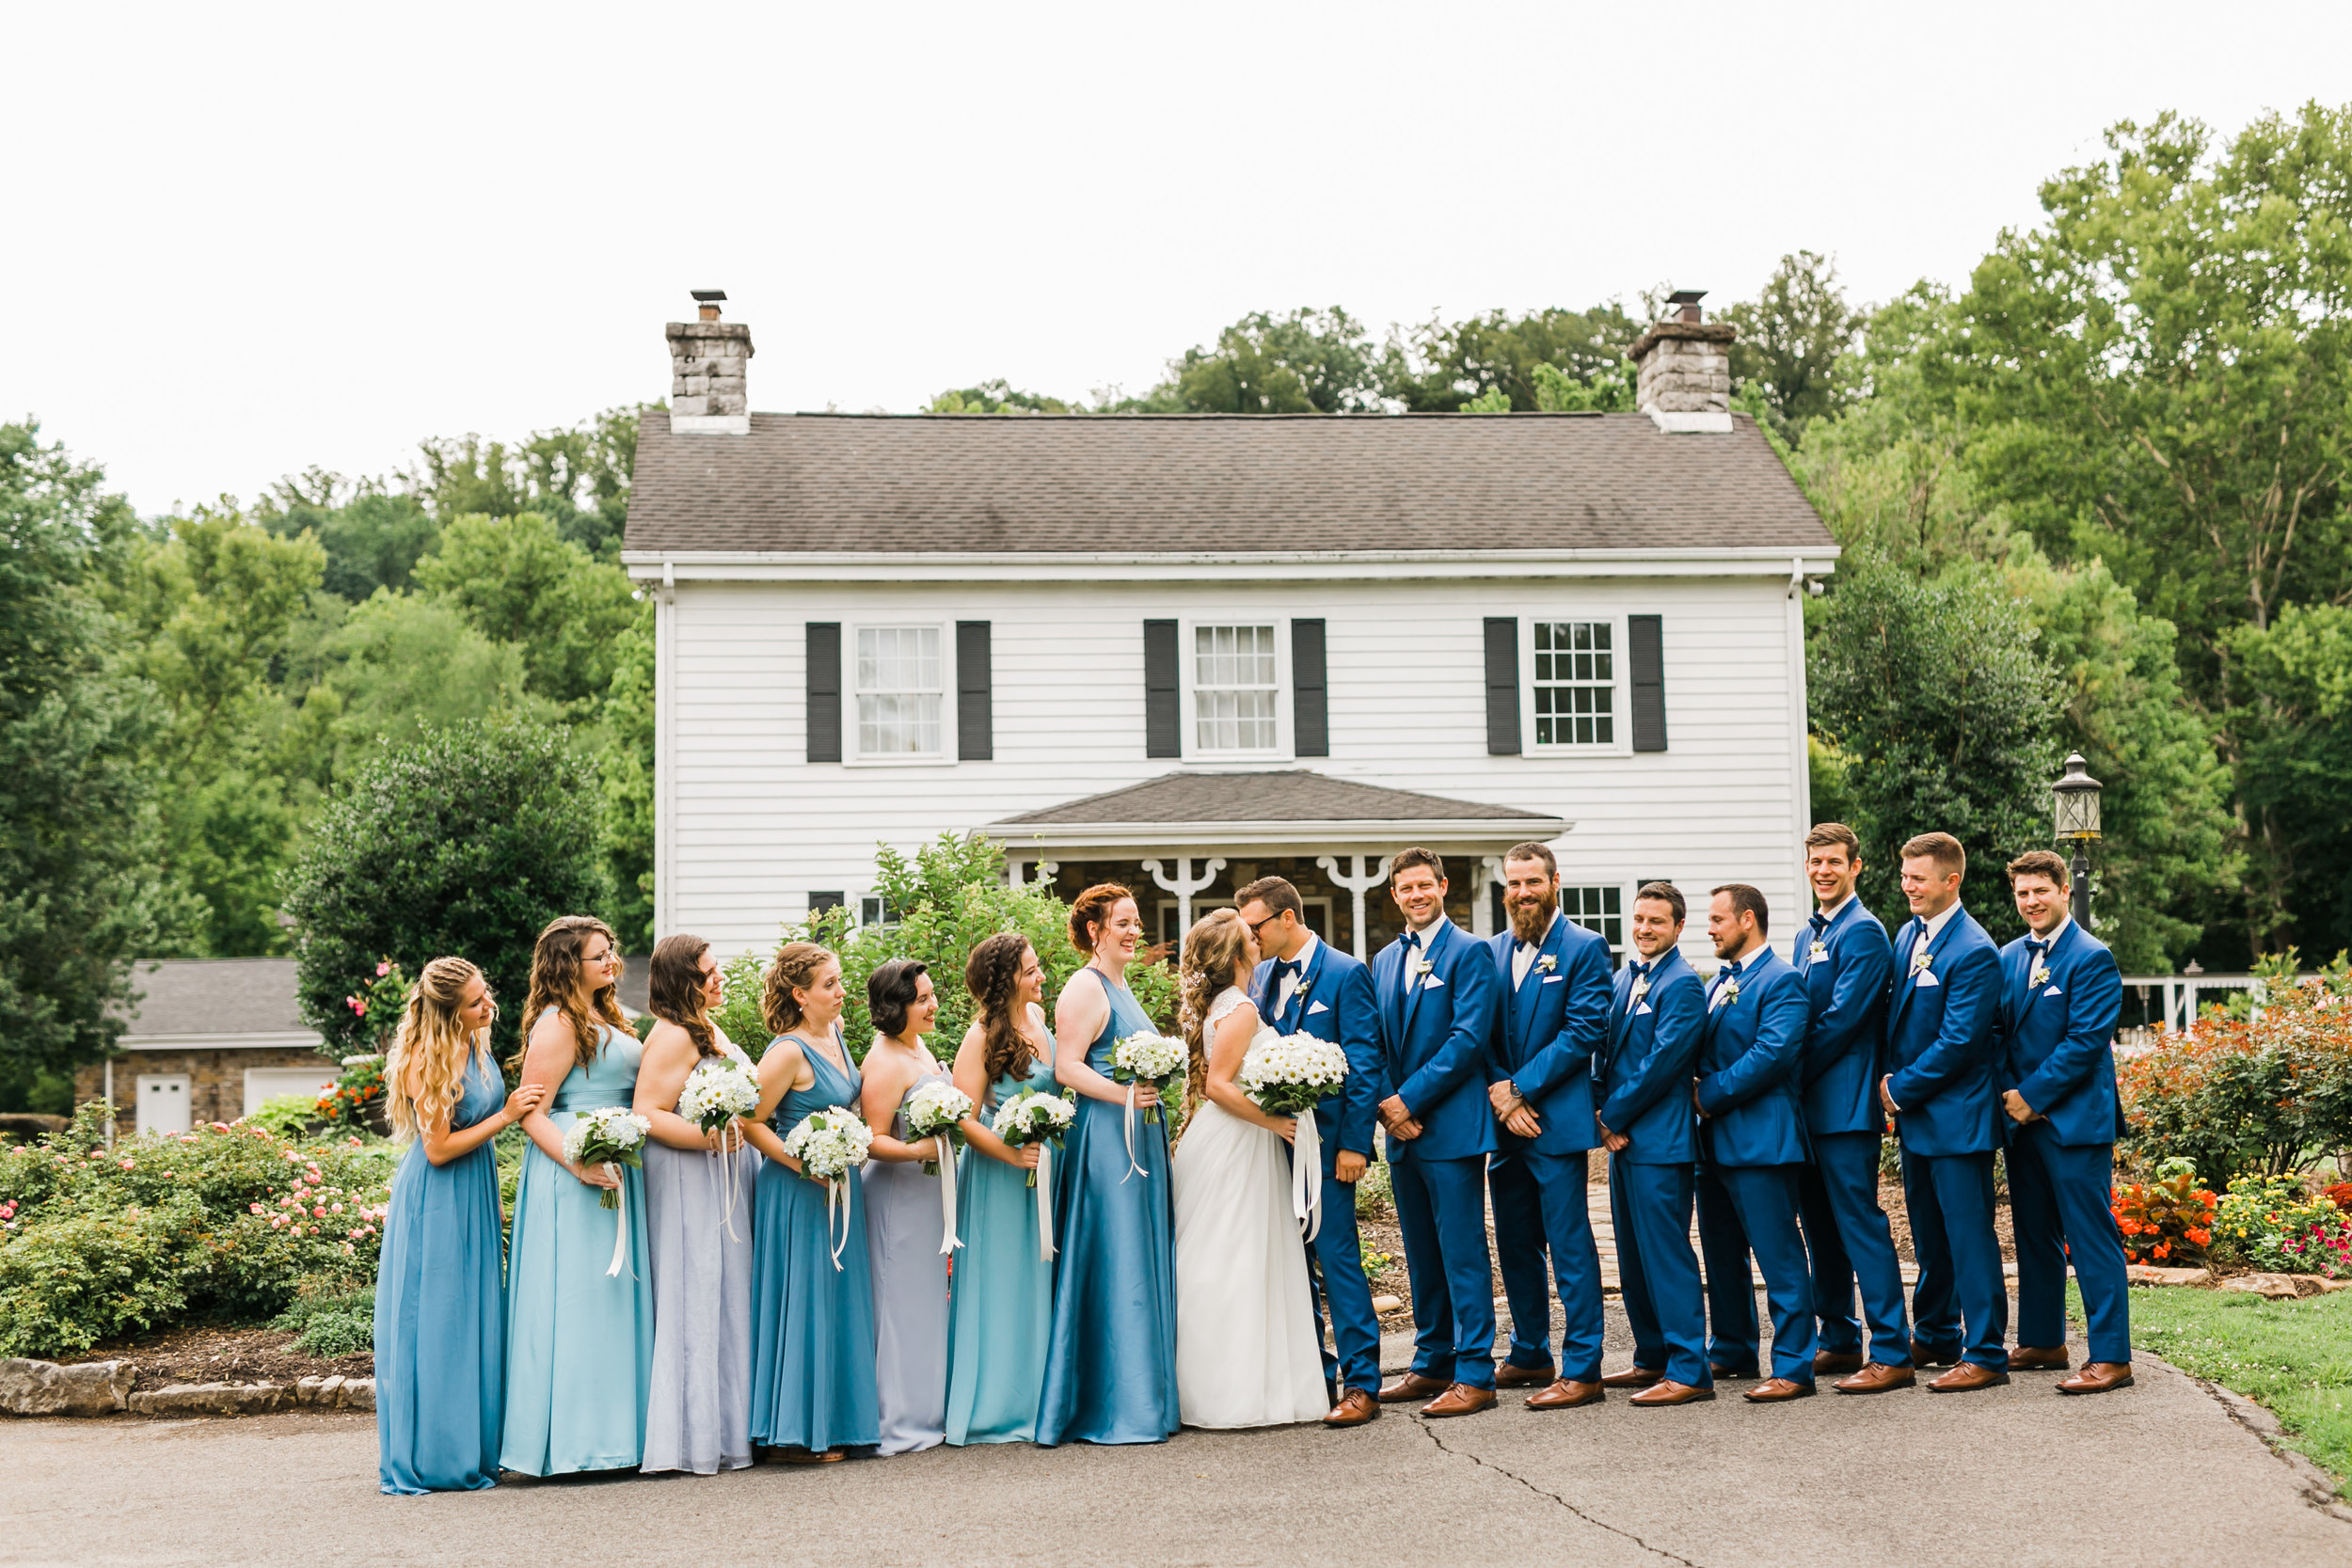 Daras garden house blue bridesmaid and groomsmen wedding